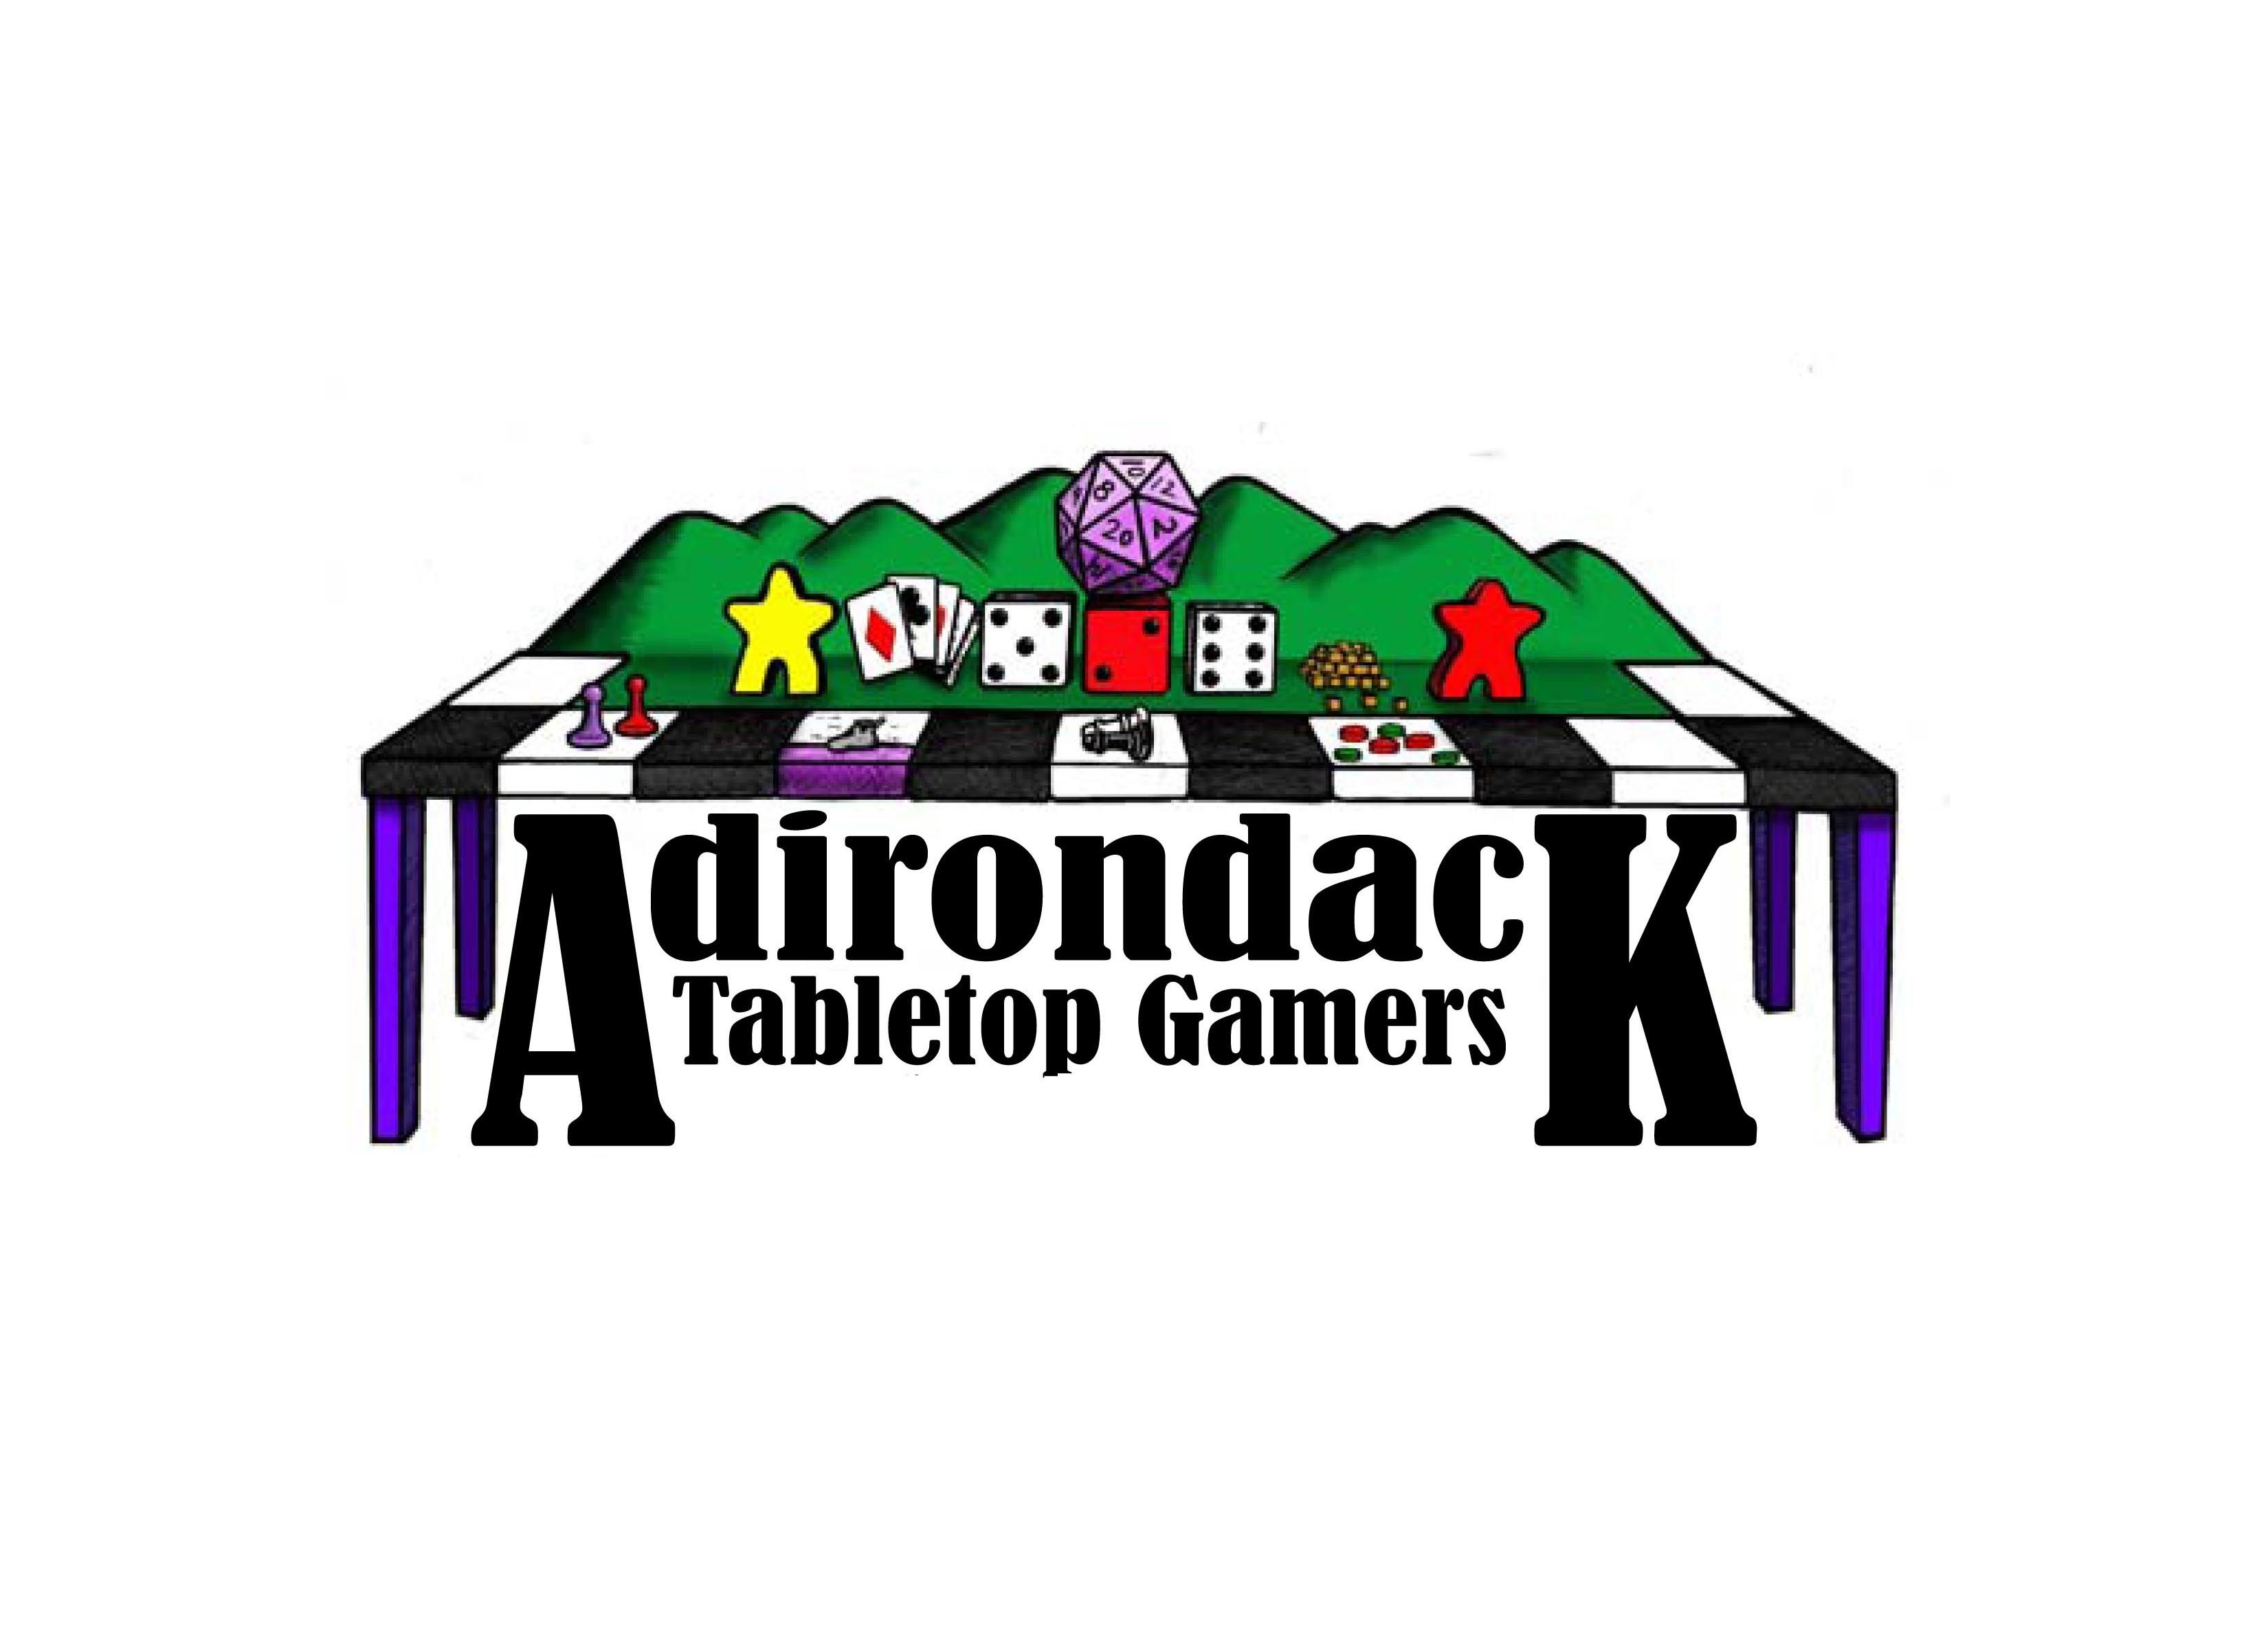 Adirondack Tabletop Gamers and Game Developers